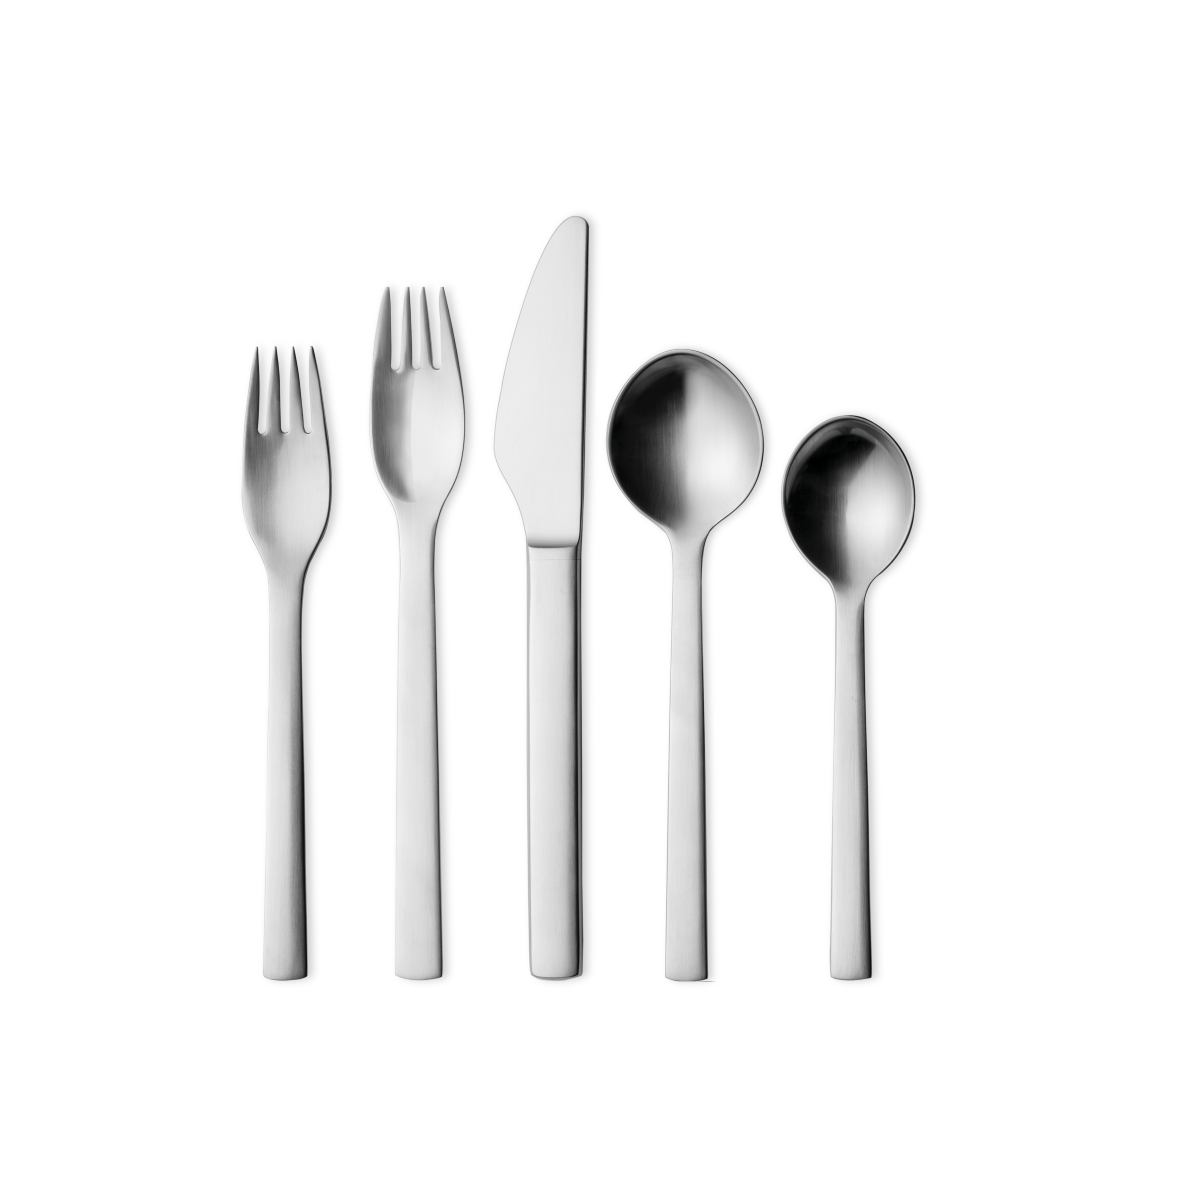 5 Pieces Mirror Polished Stainless Steel 18//8 by Harald Nielsen 1x Smaller Appetiser Fork 1x Dinner Spoon and 1x Tea Spoon 1x Long Dinner Knife Georg Jensen Pyramid Cutlery Set 1x Dinner Fork